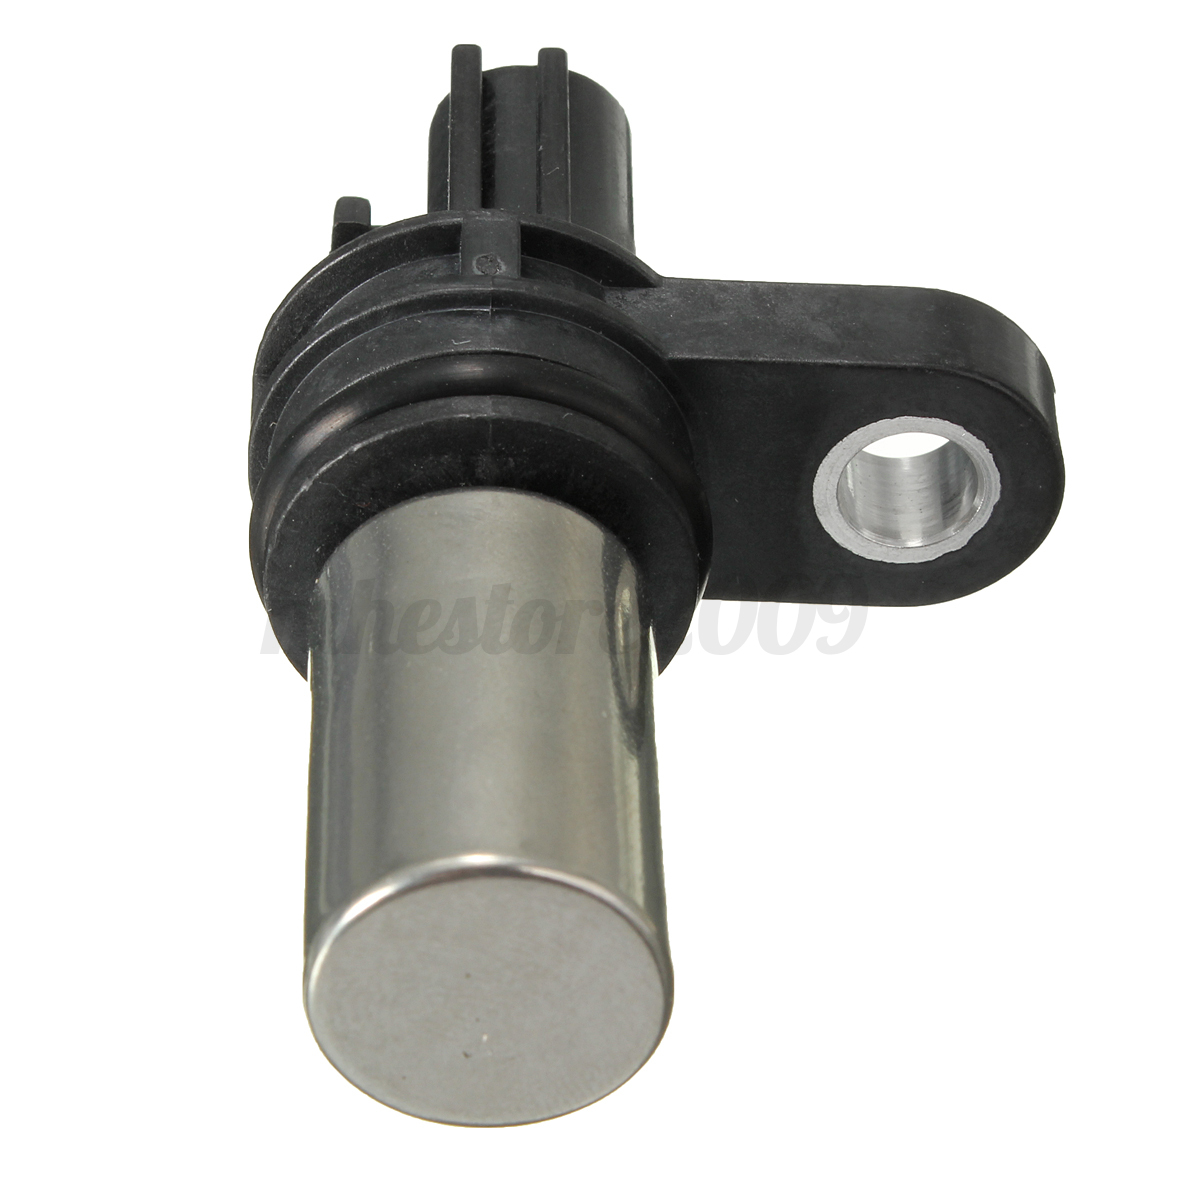 2008 Nissan Altima Camshaft: NEW Crankshaft Camshaft Position Sensor For Nissan NP300